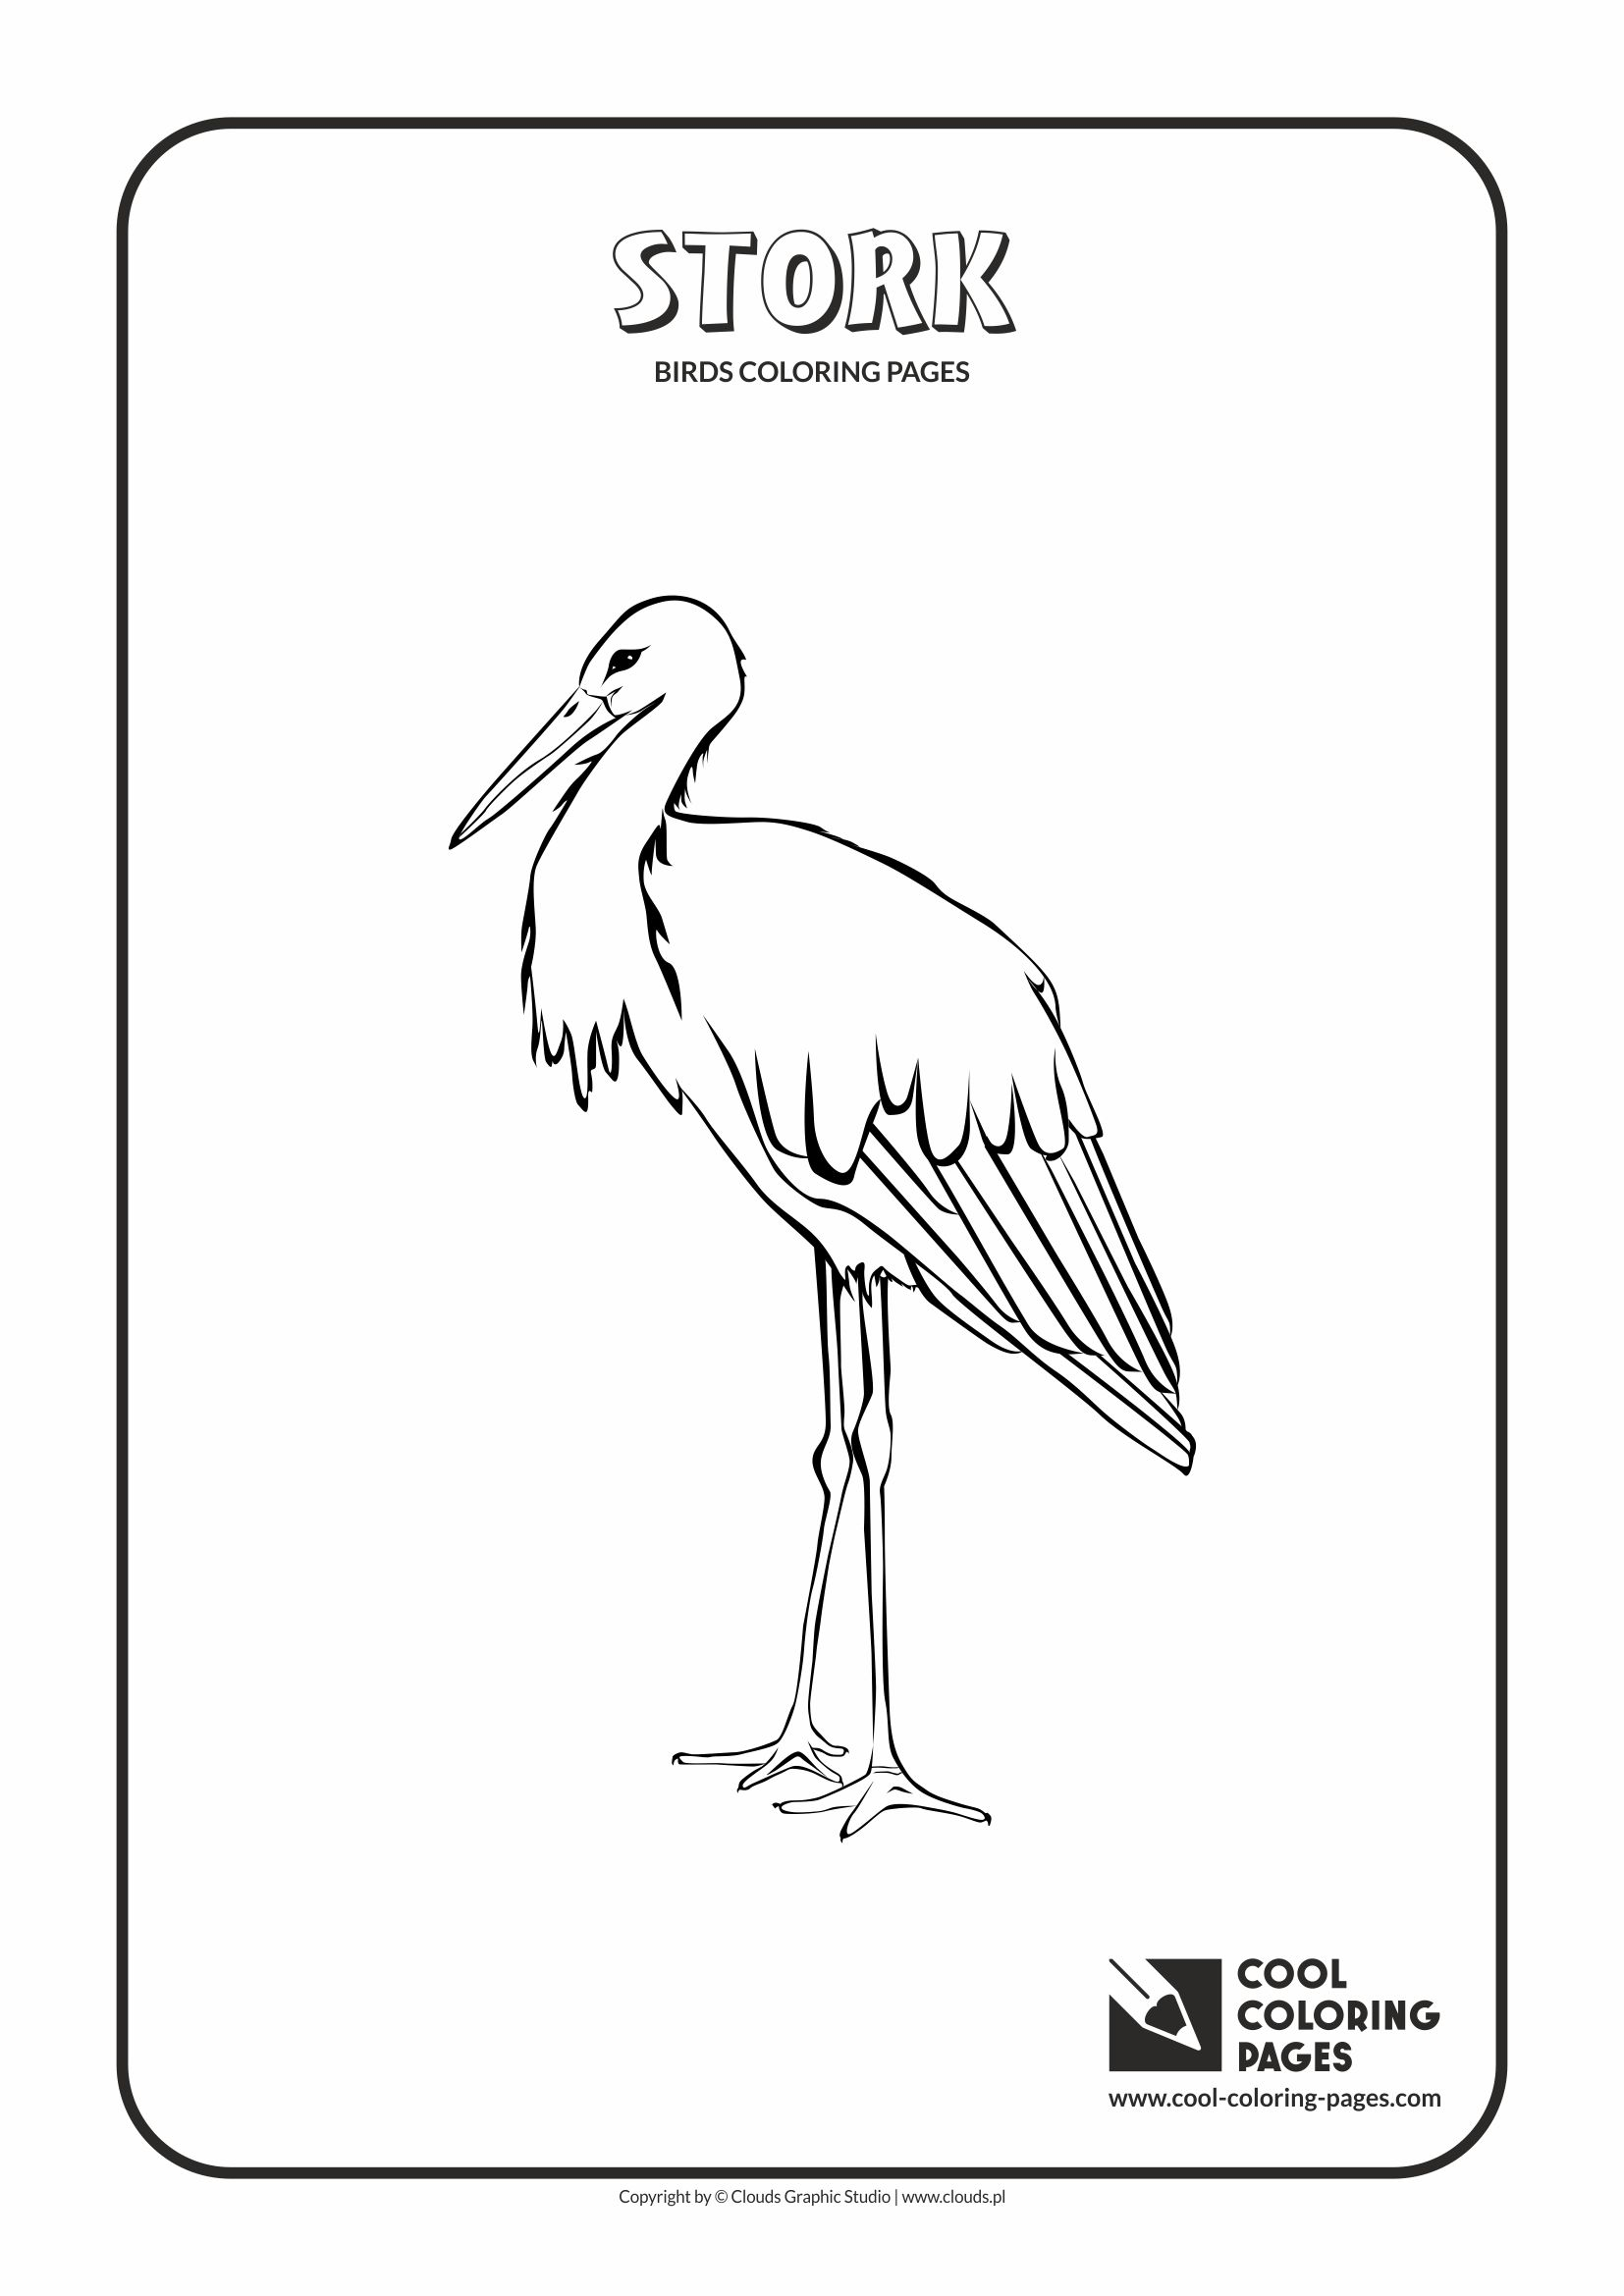 Cool Coloring Pages Stork coloring page Cool Coloring Pages Free